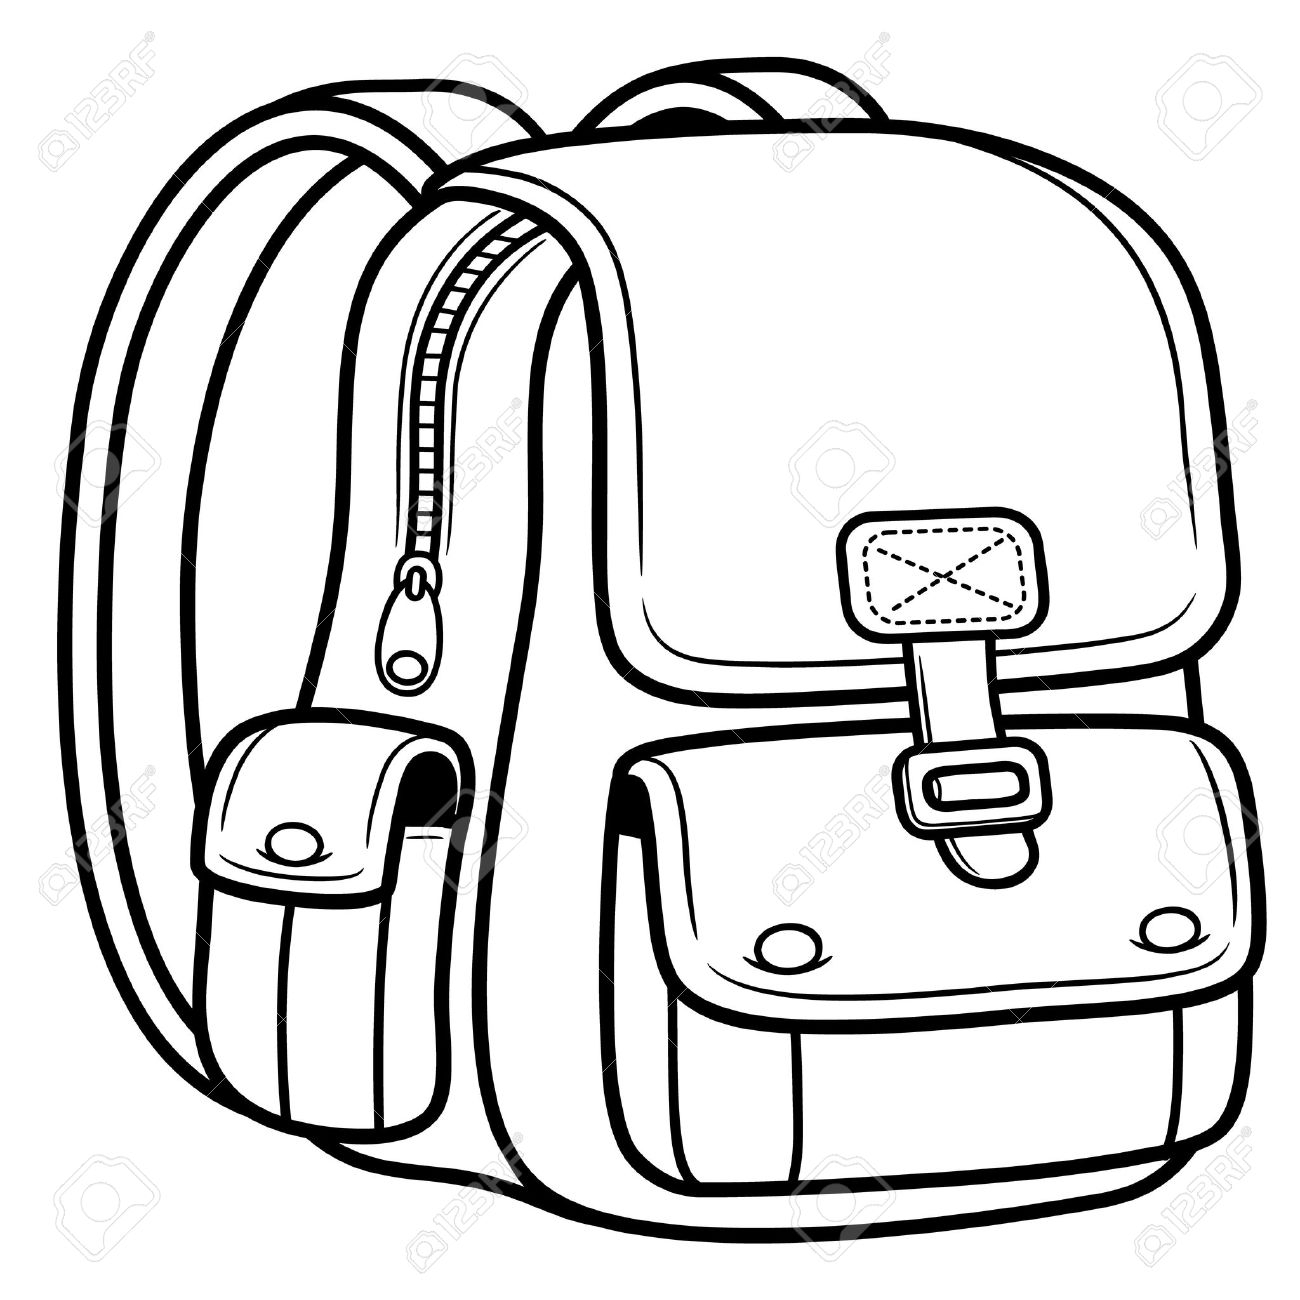 Bag clipart black and white Collection Collection and clipart Bag